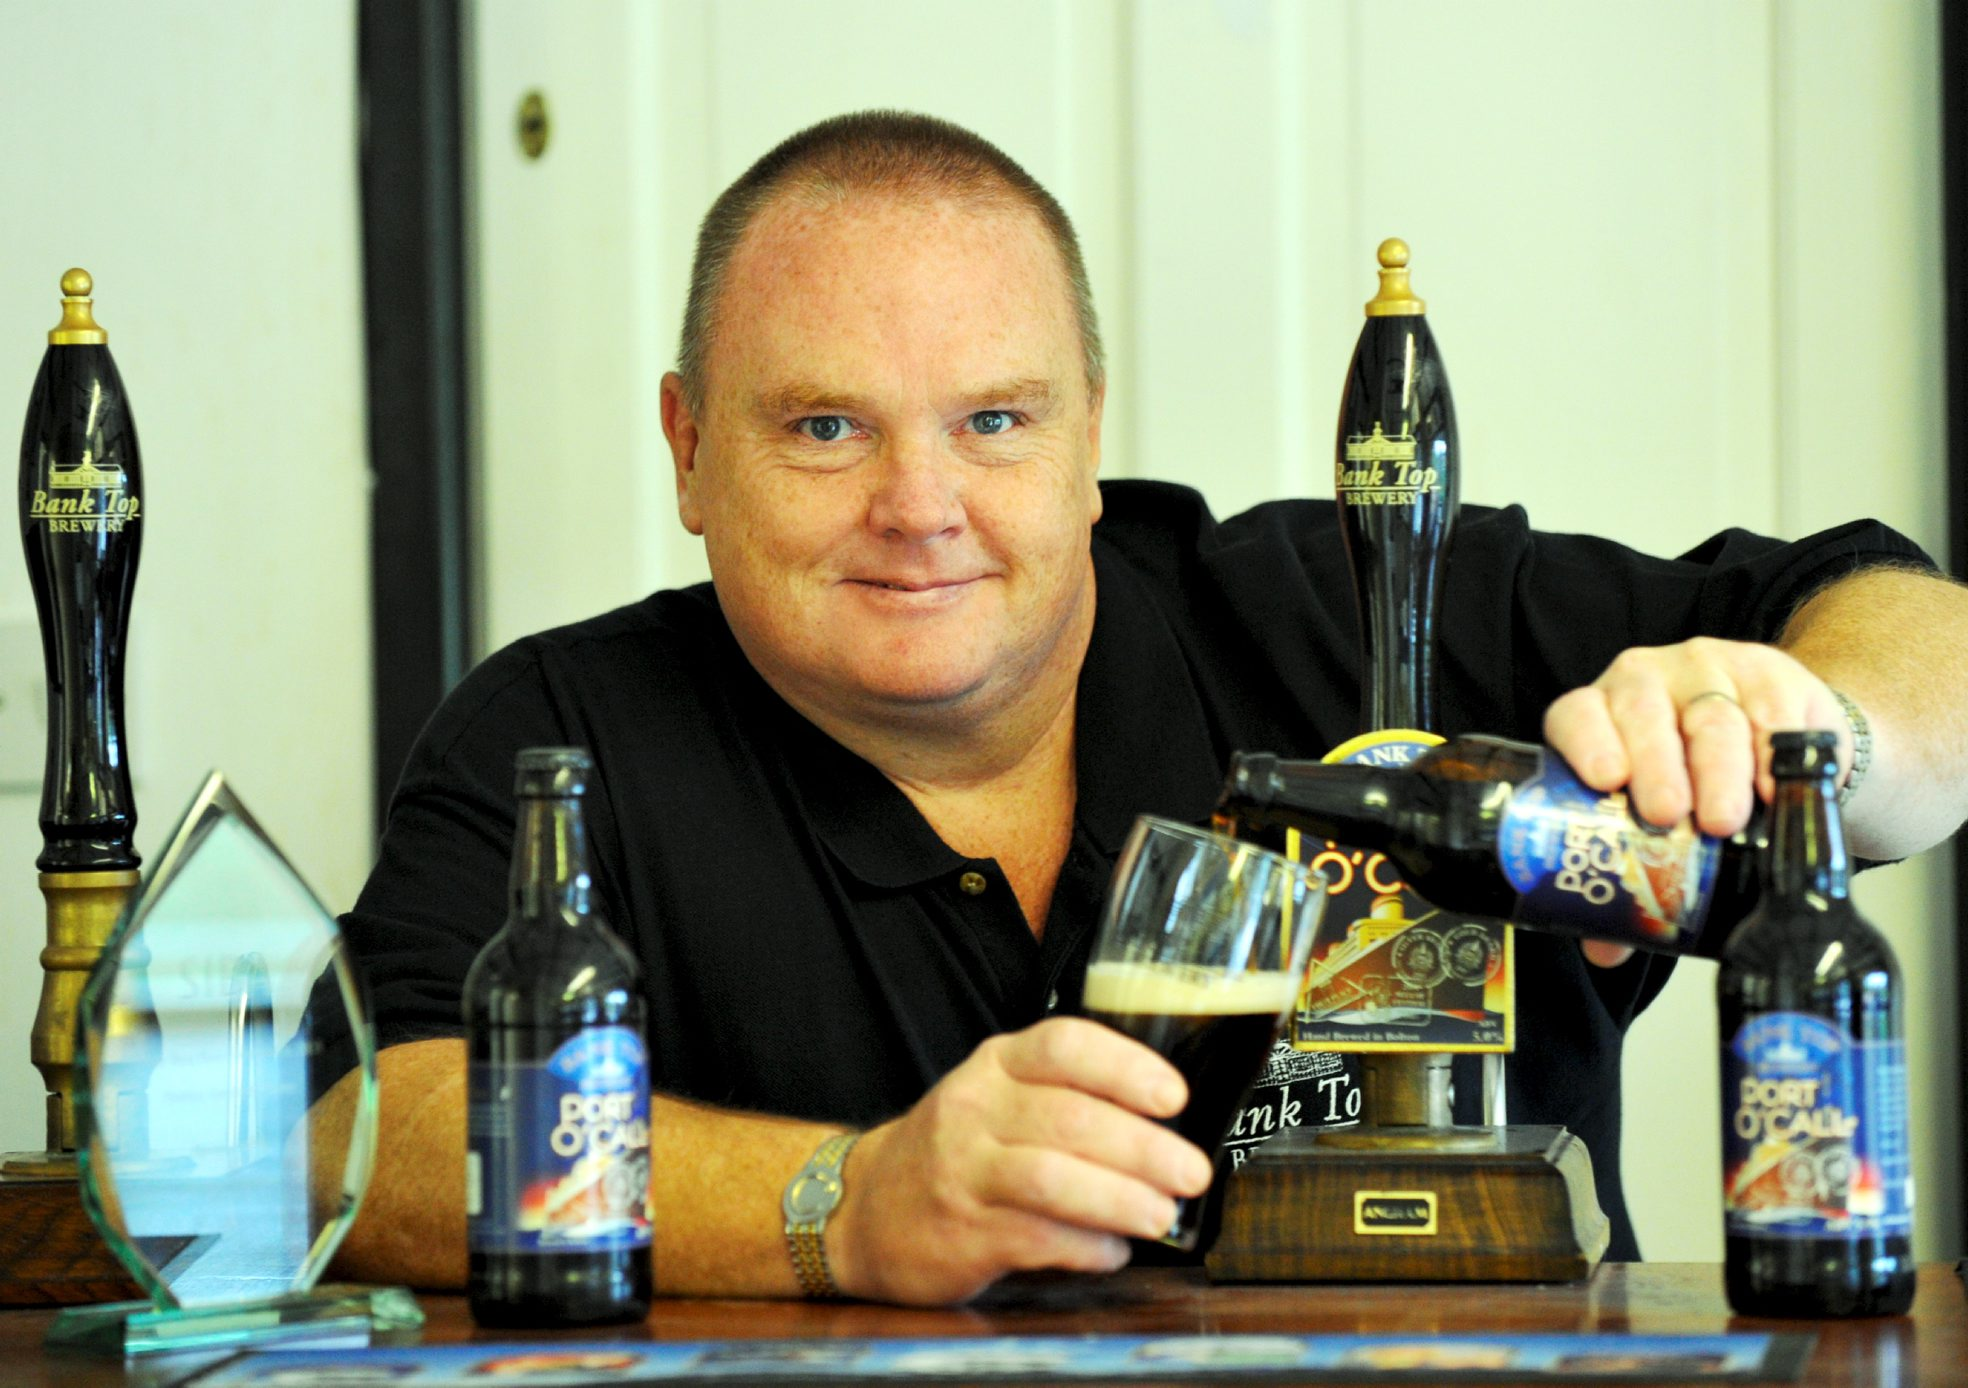 Champion brewer, David Sweeney at his Bank Top Brewery